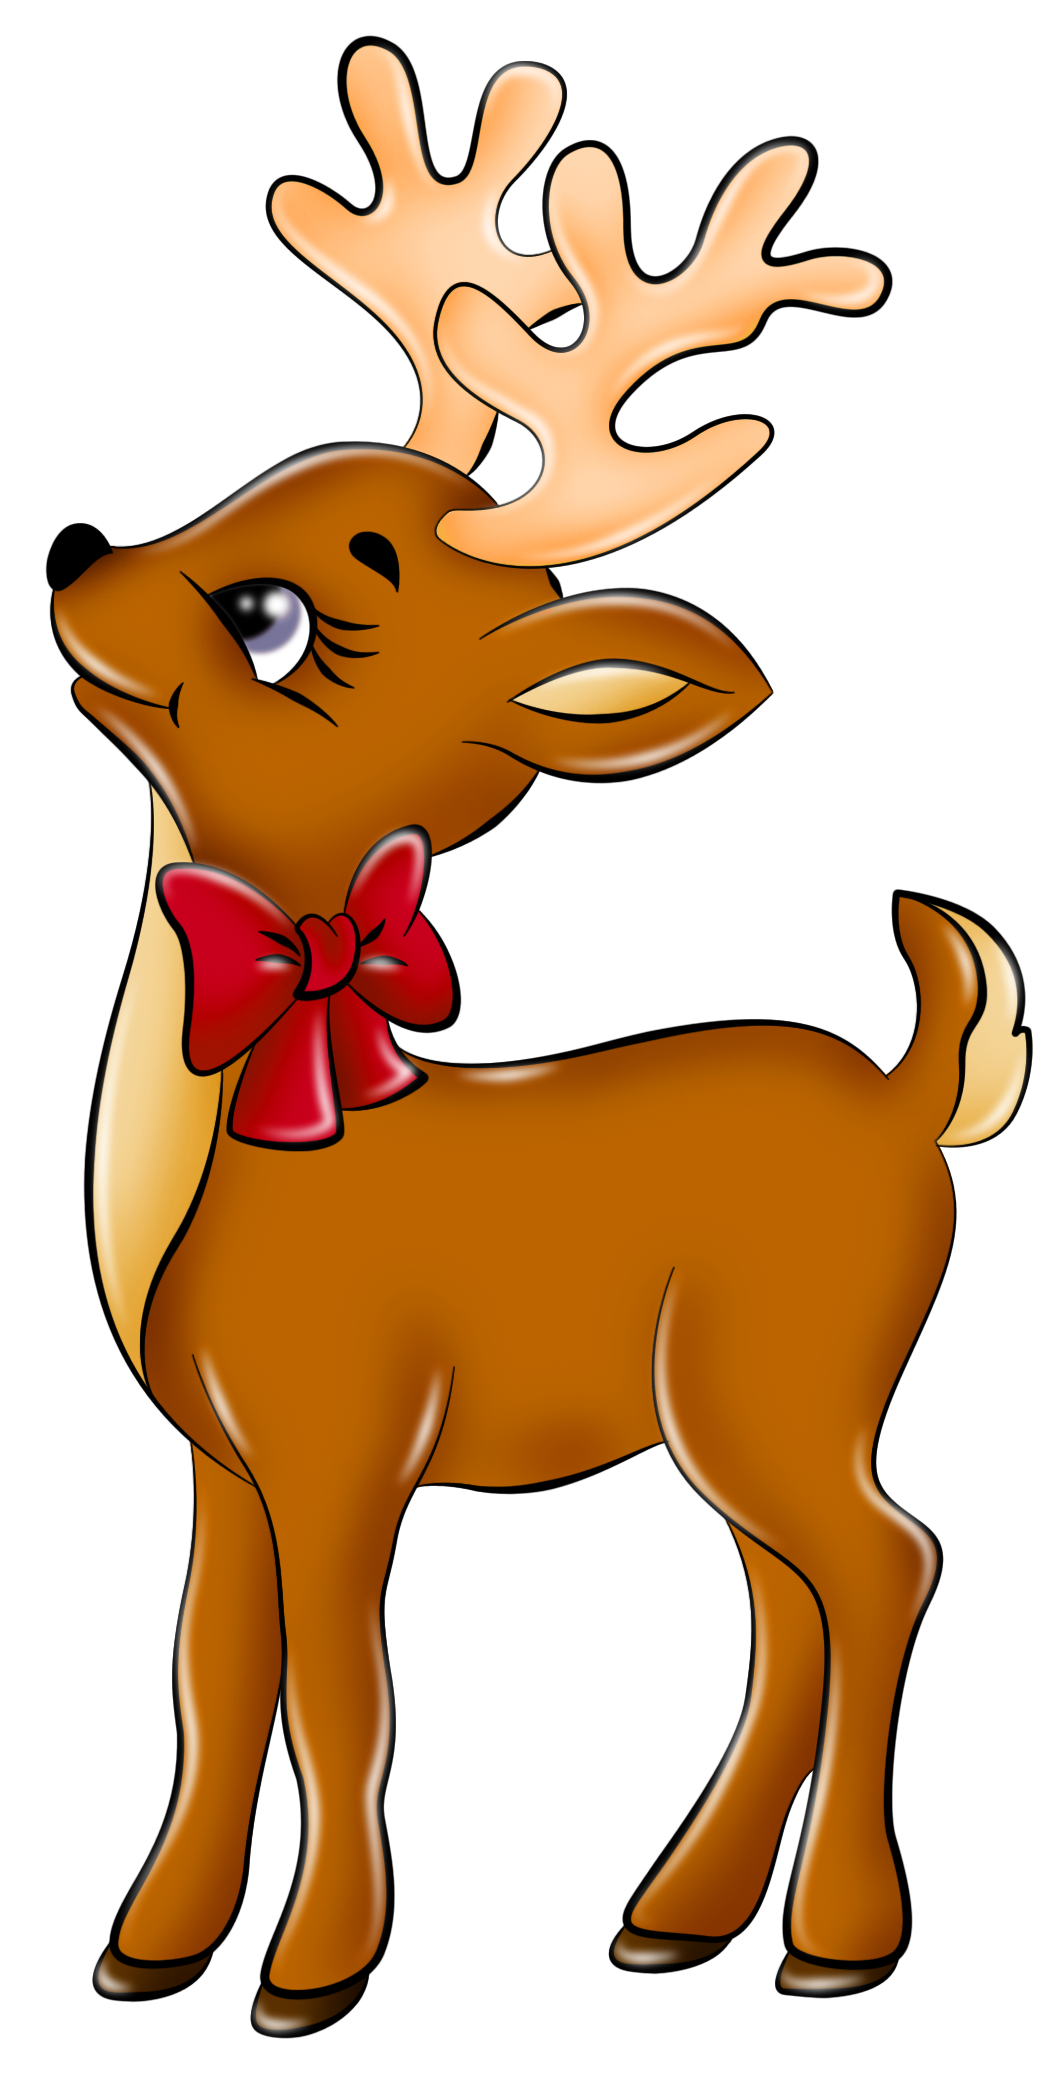 Flashing Reindeer Png - Rudolph Clipart Free | Free download best Rudolph Clipart Free on ...